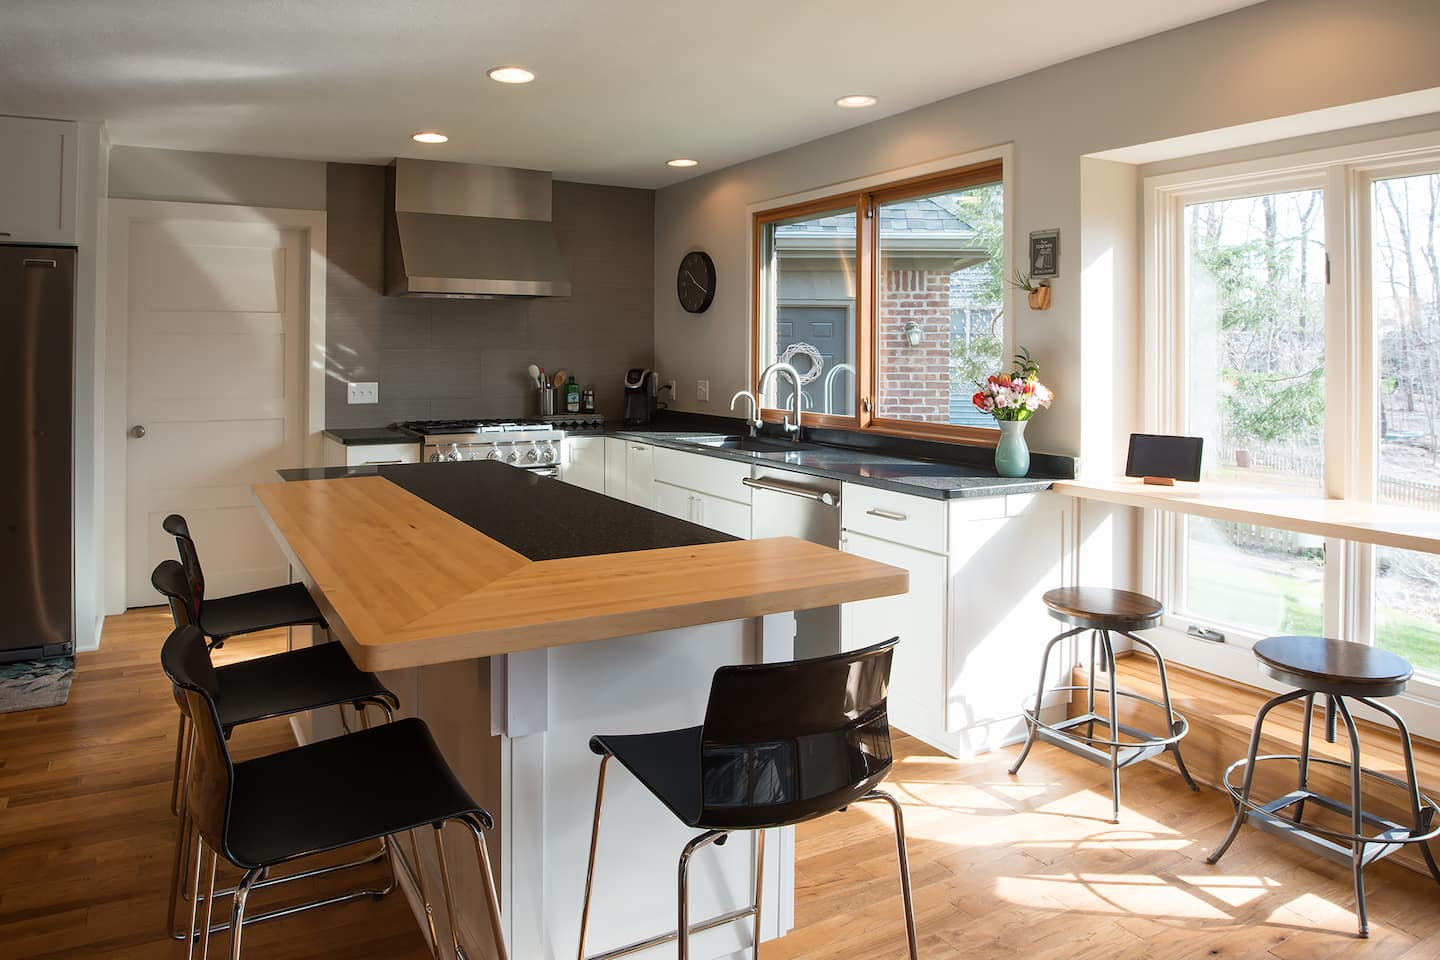 Remodel Makes a Modern Kitchen for the Ages